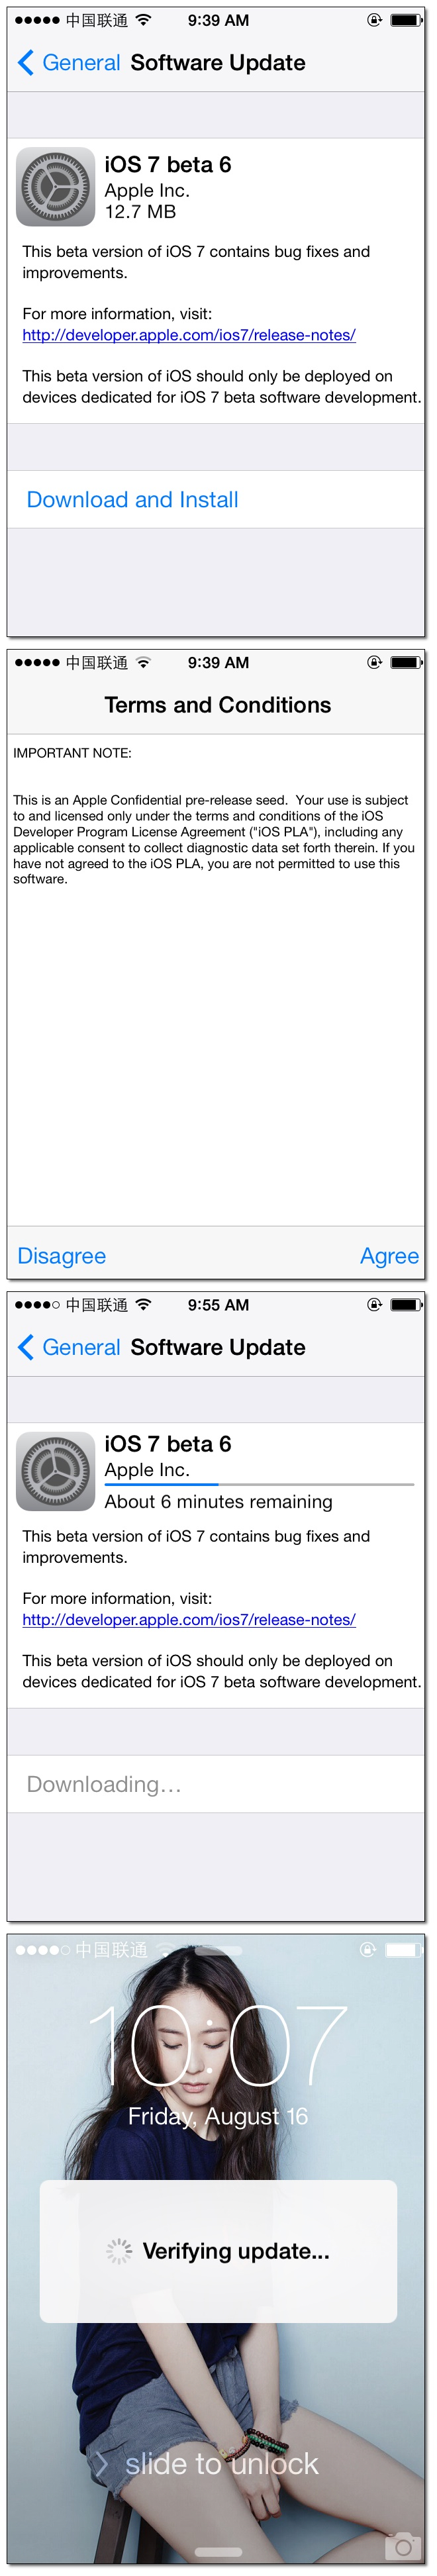 UPDATING-IOS-7-BETA-6